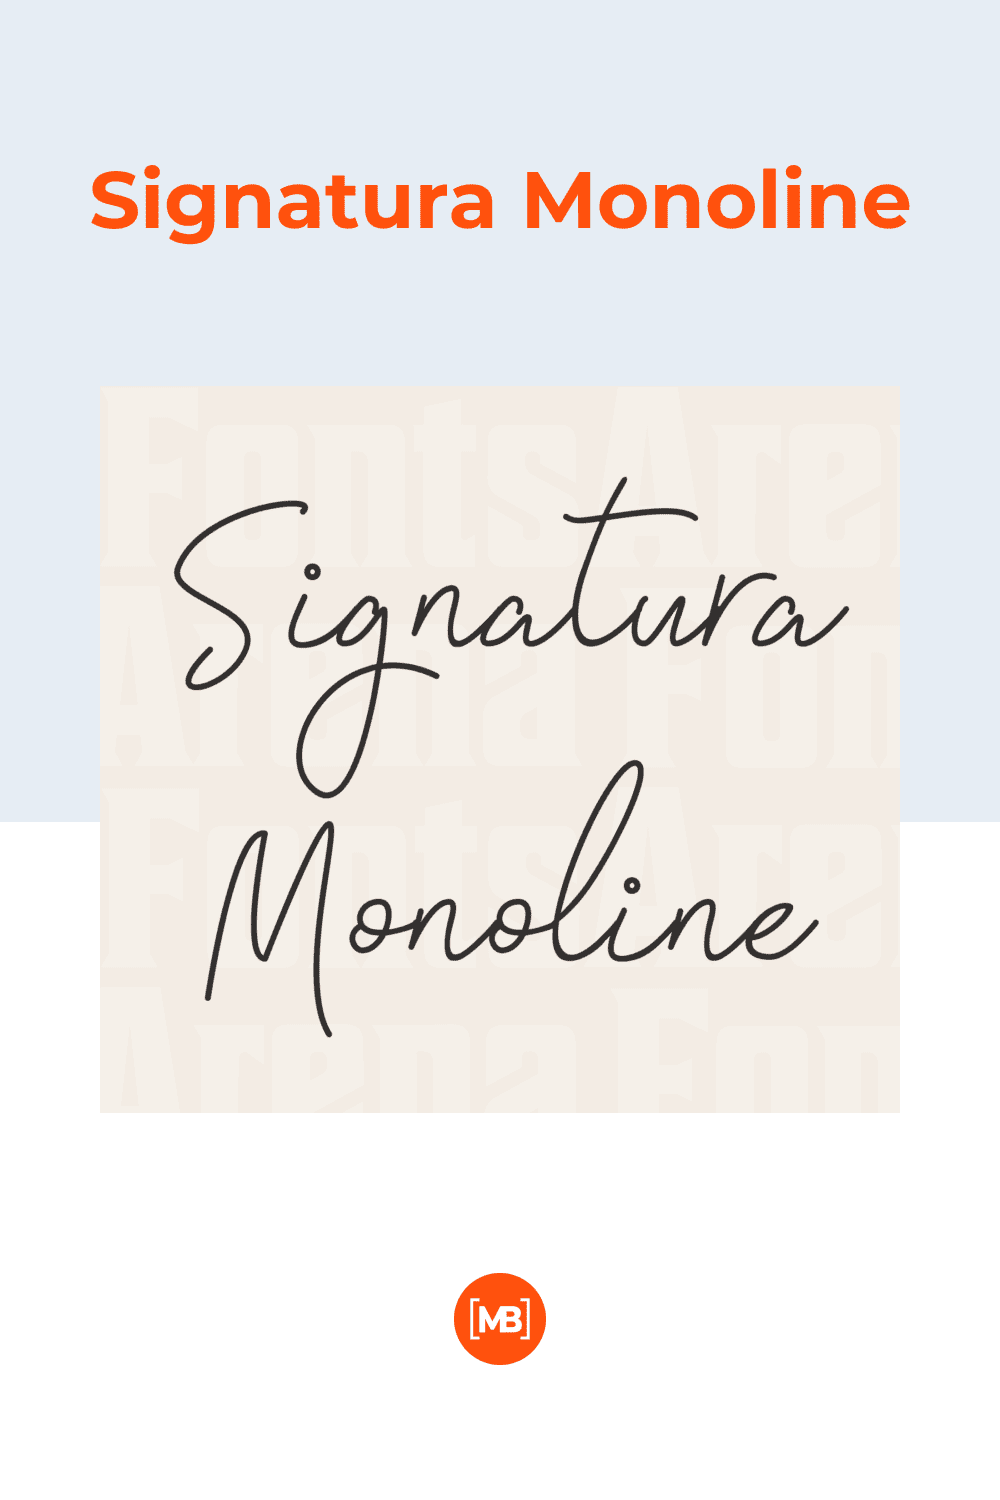 This is a modern calligraphy script typeface, ideal for signatures and monograms, as well as branding, stationery, headlines or banners.